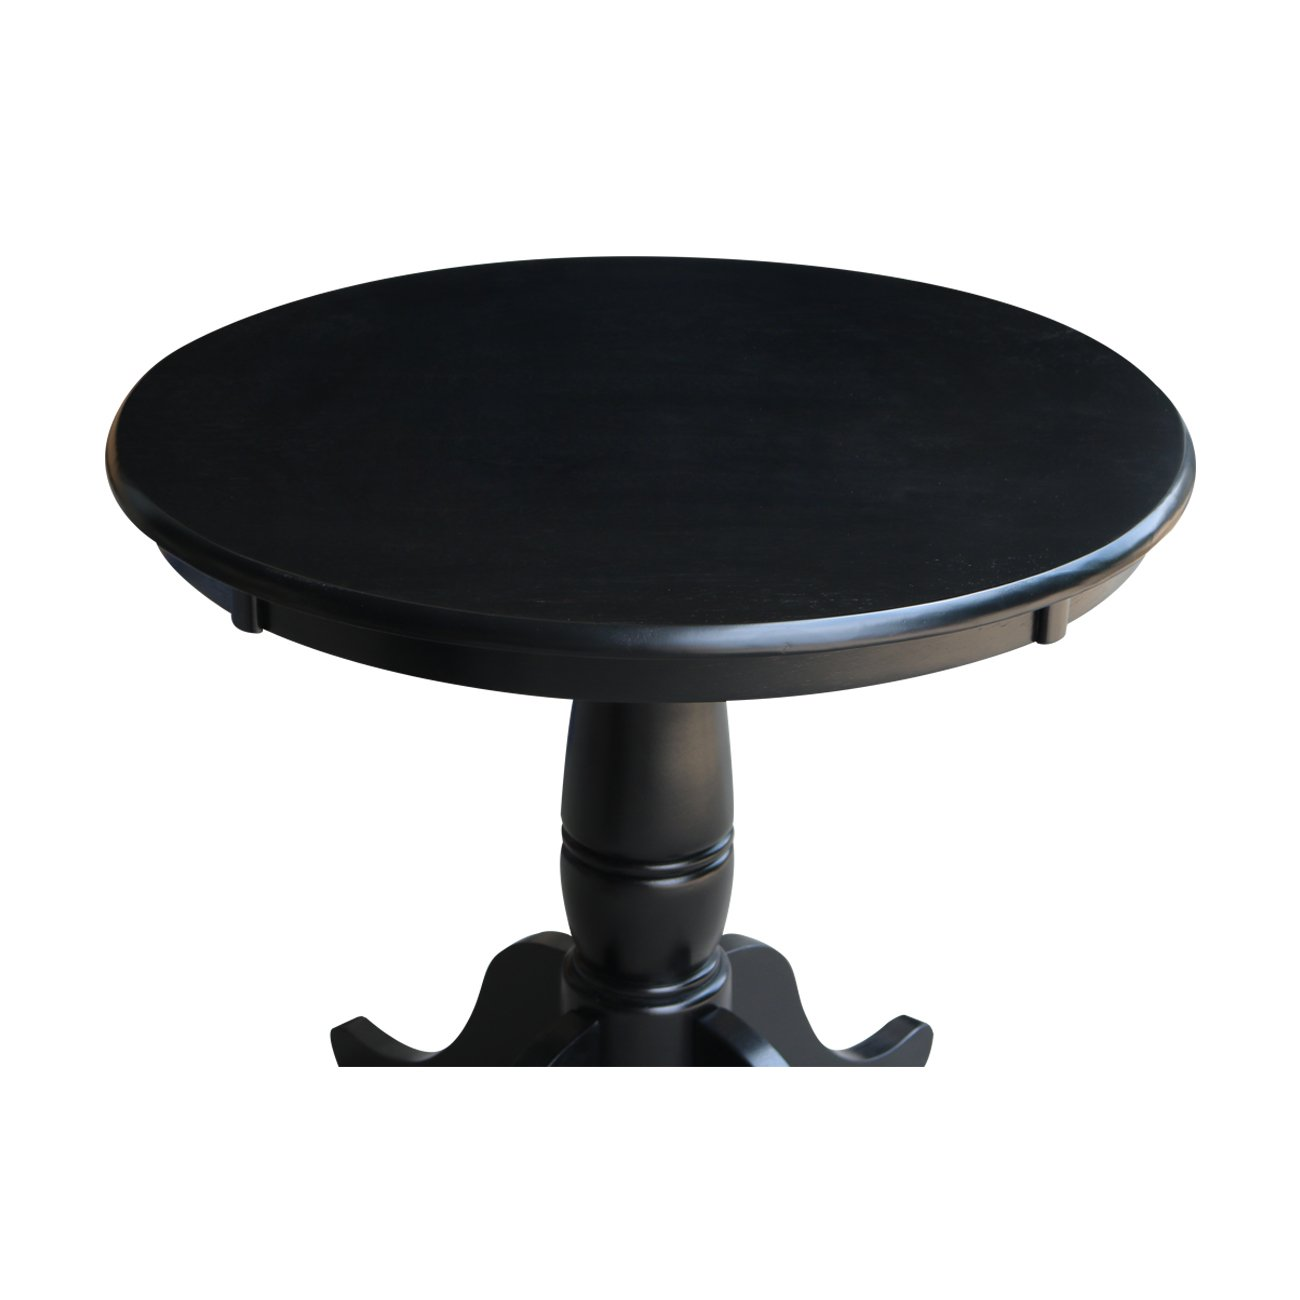 International Concepts 30-Inch Round by 30-Inch High Top Ped Table, Black